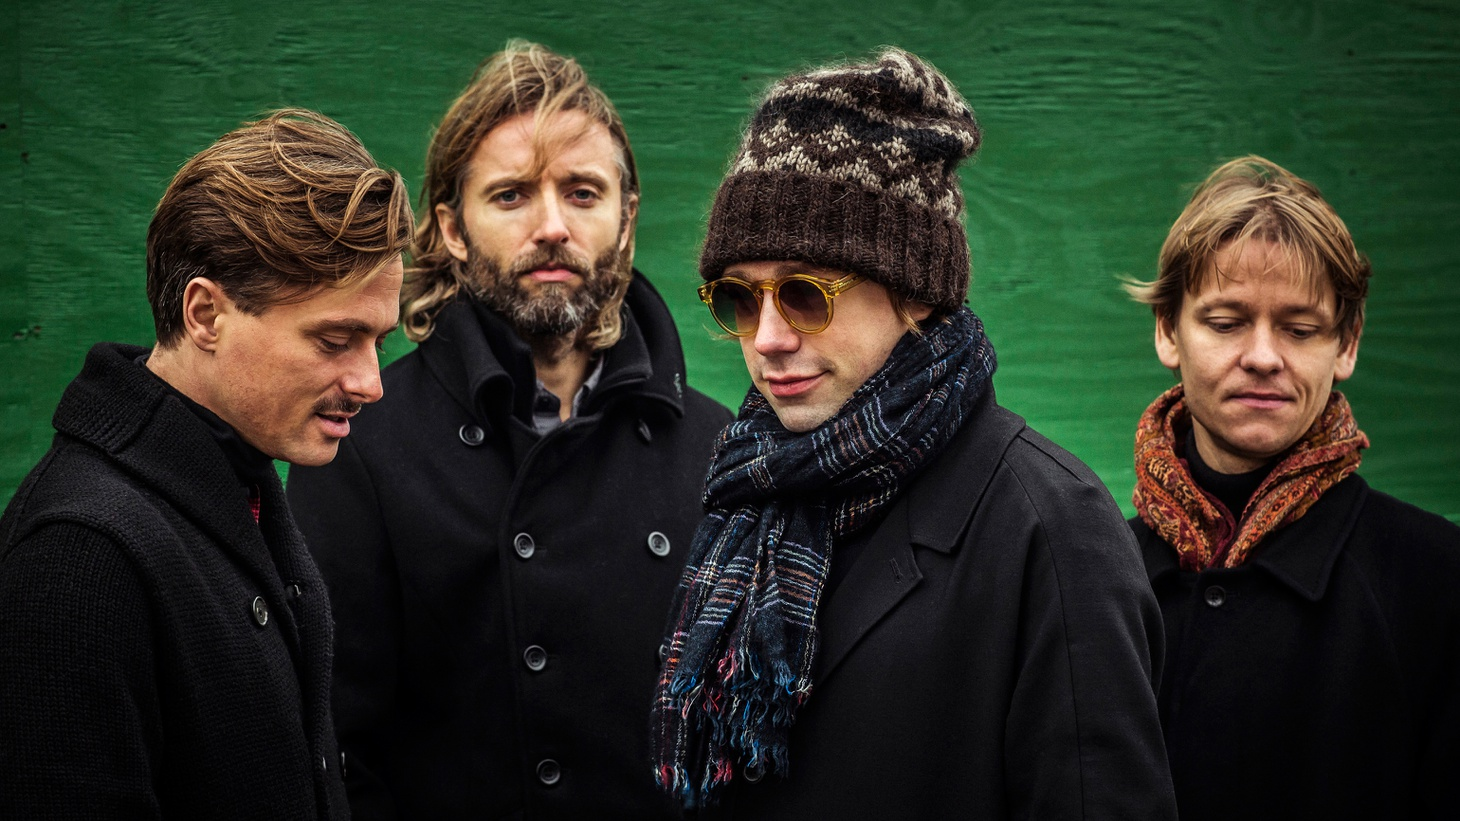 Danish art rockers Mew are back with their first album in six years!